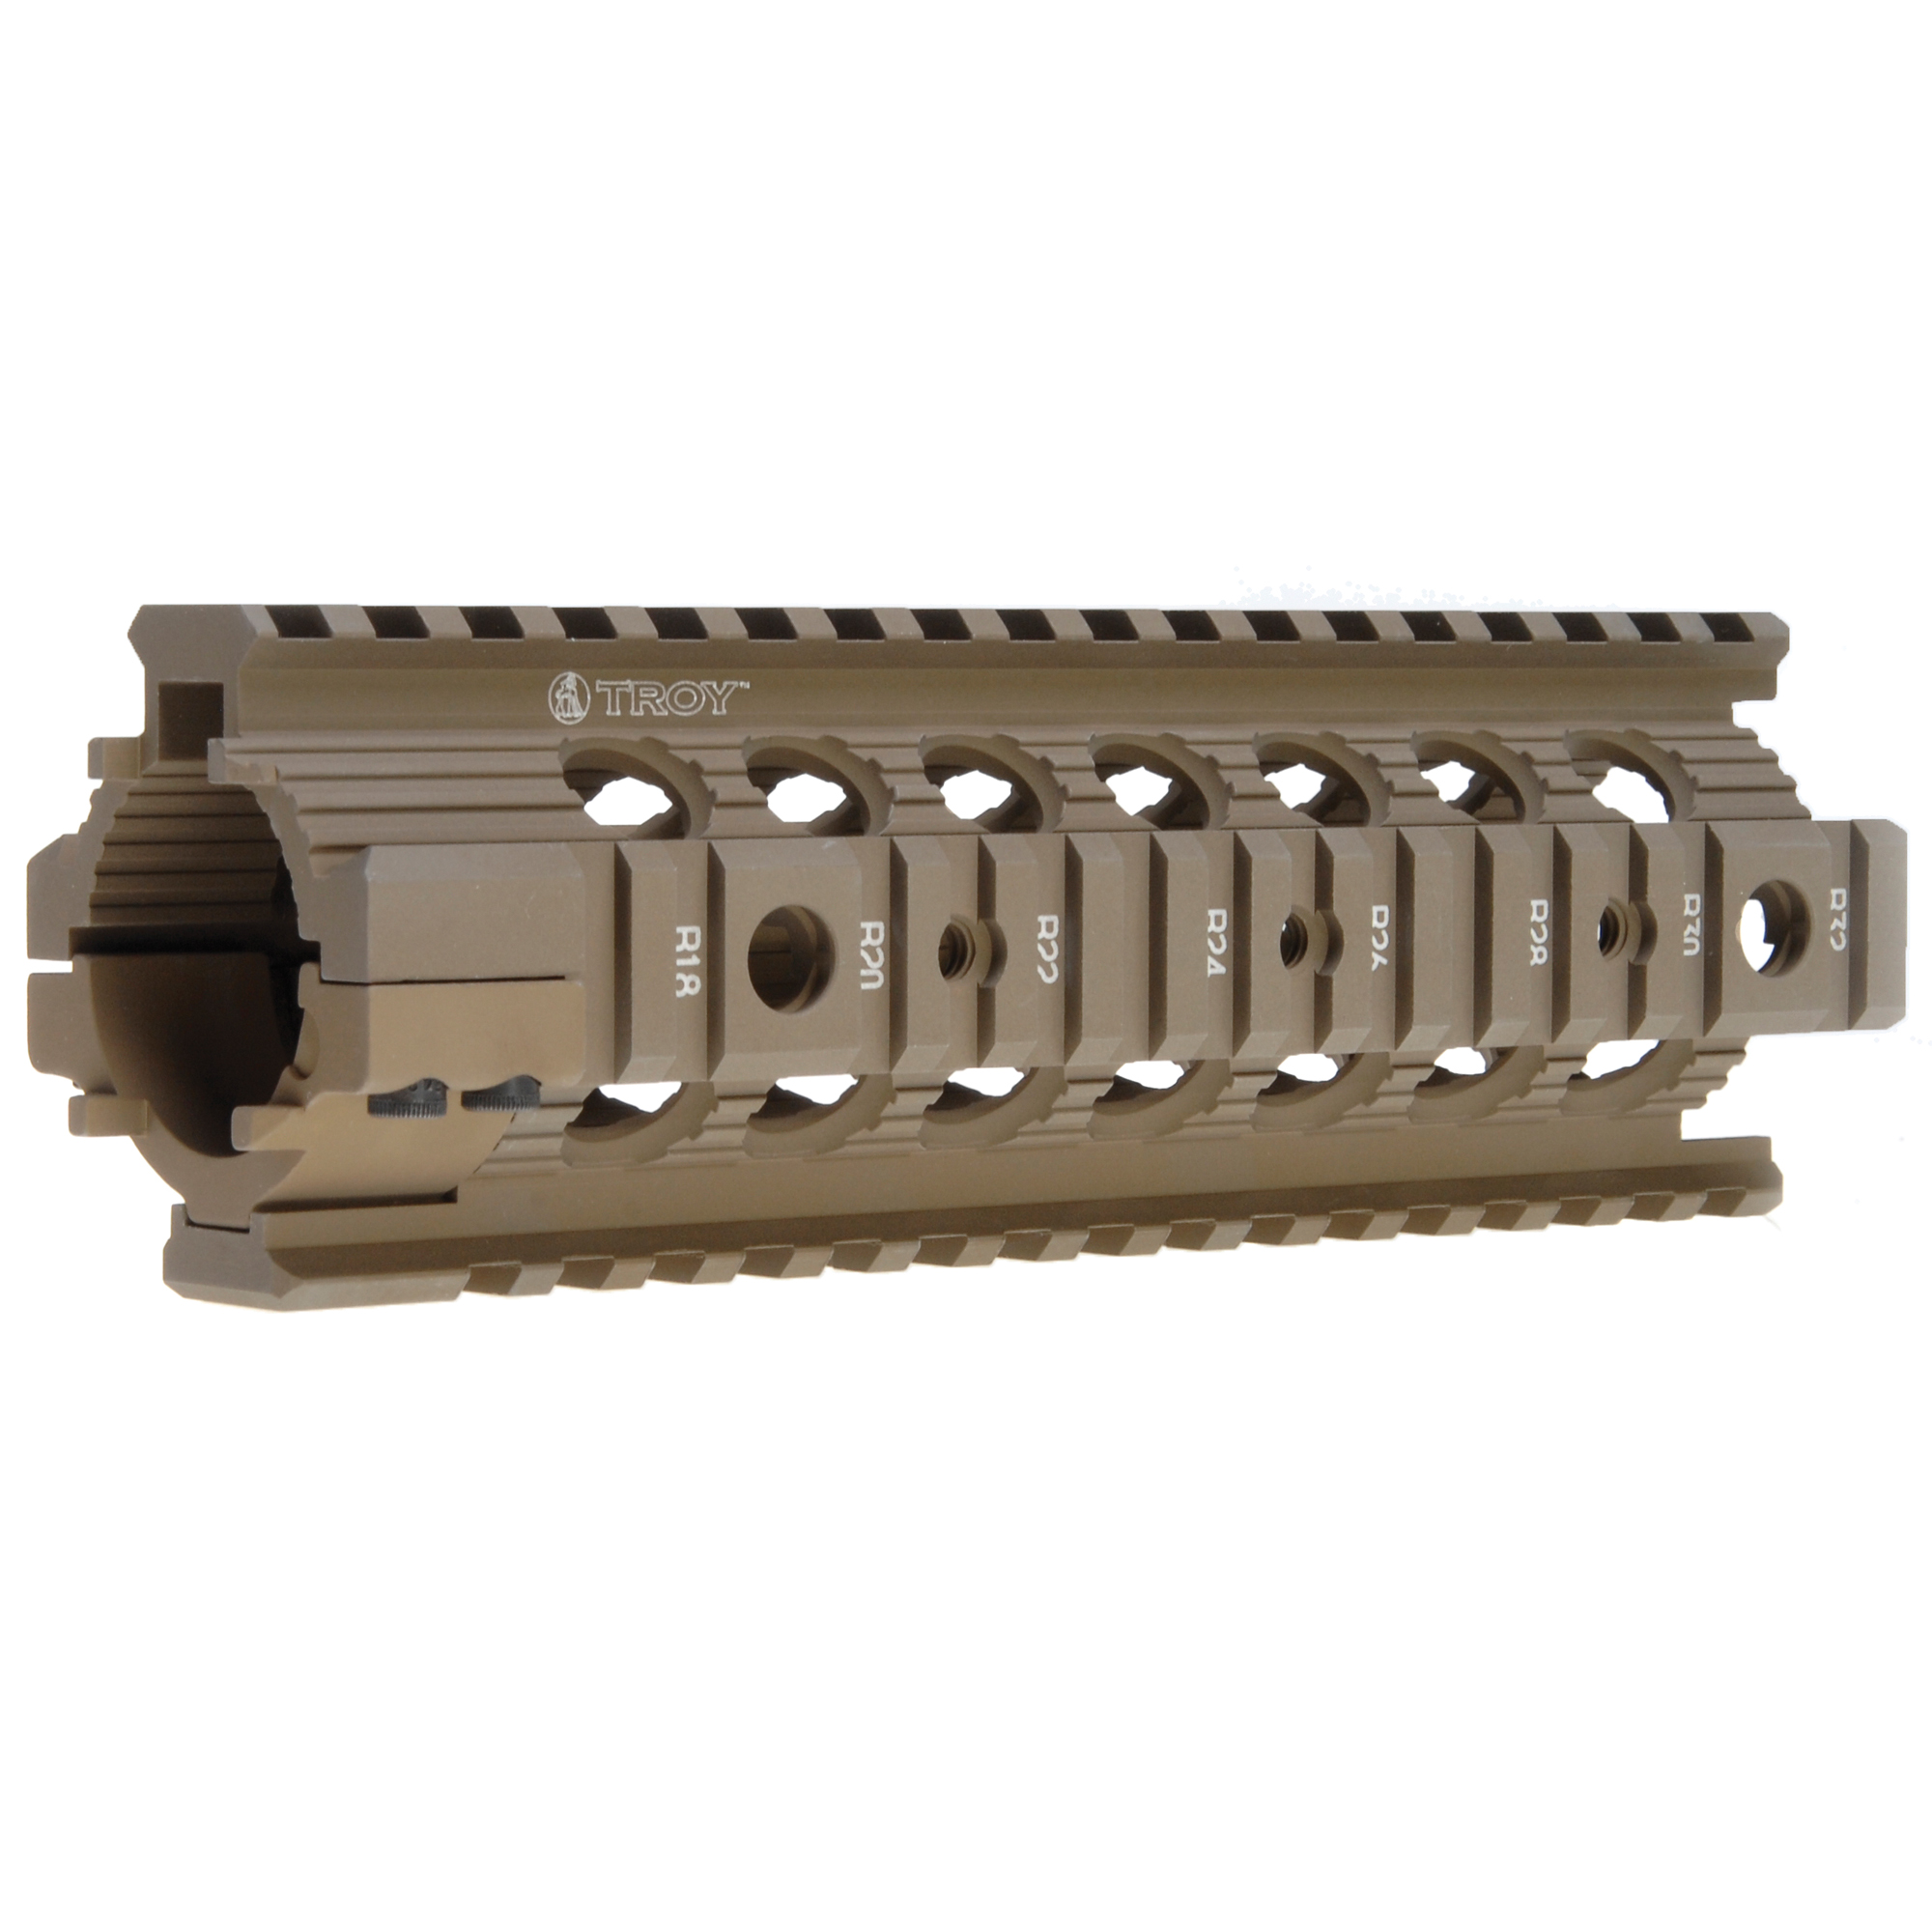 The Troy Drop-In Rail is a non free-floating direct replacement for all M4/AR15 Carbine length plastic hand guards with a round end plate. The Troy patented clamping design ensures a solid mounting platform and provides a true optical mounting platform that increases the modularity and accuracy of the M4.